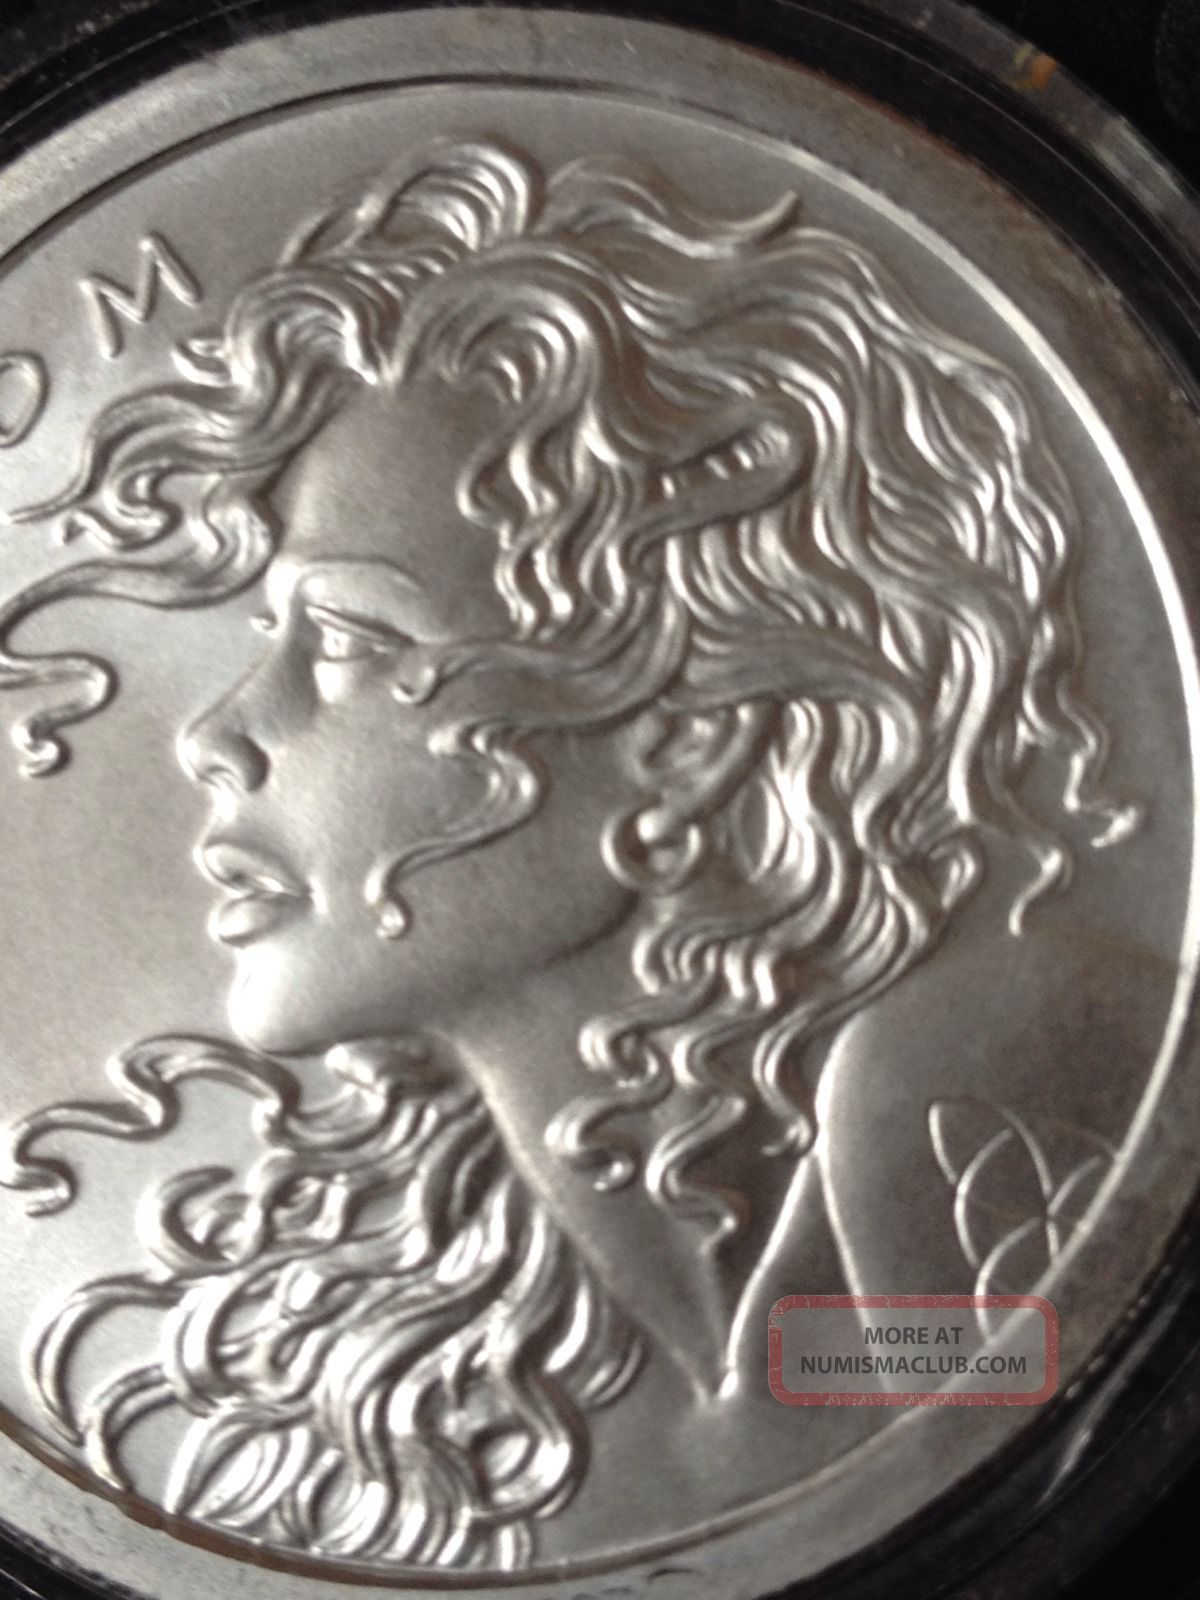 1 Oz Silver Coin Freedom Girl Debt Amp Death Sbss Very Rare